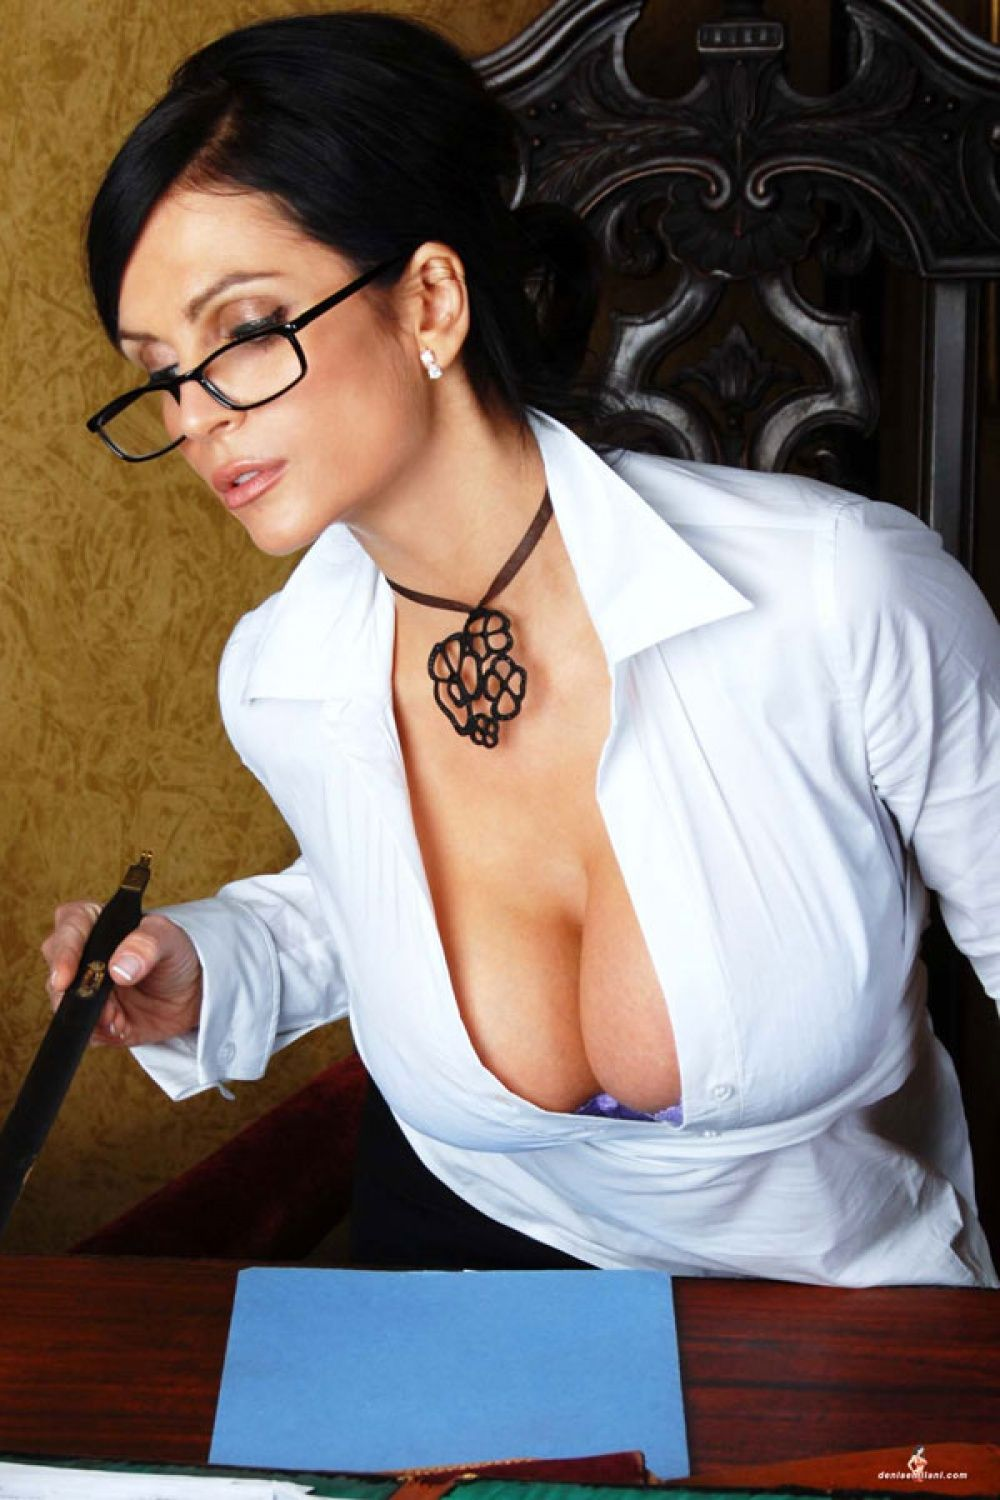 Lucie theodorova and office sexl